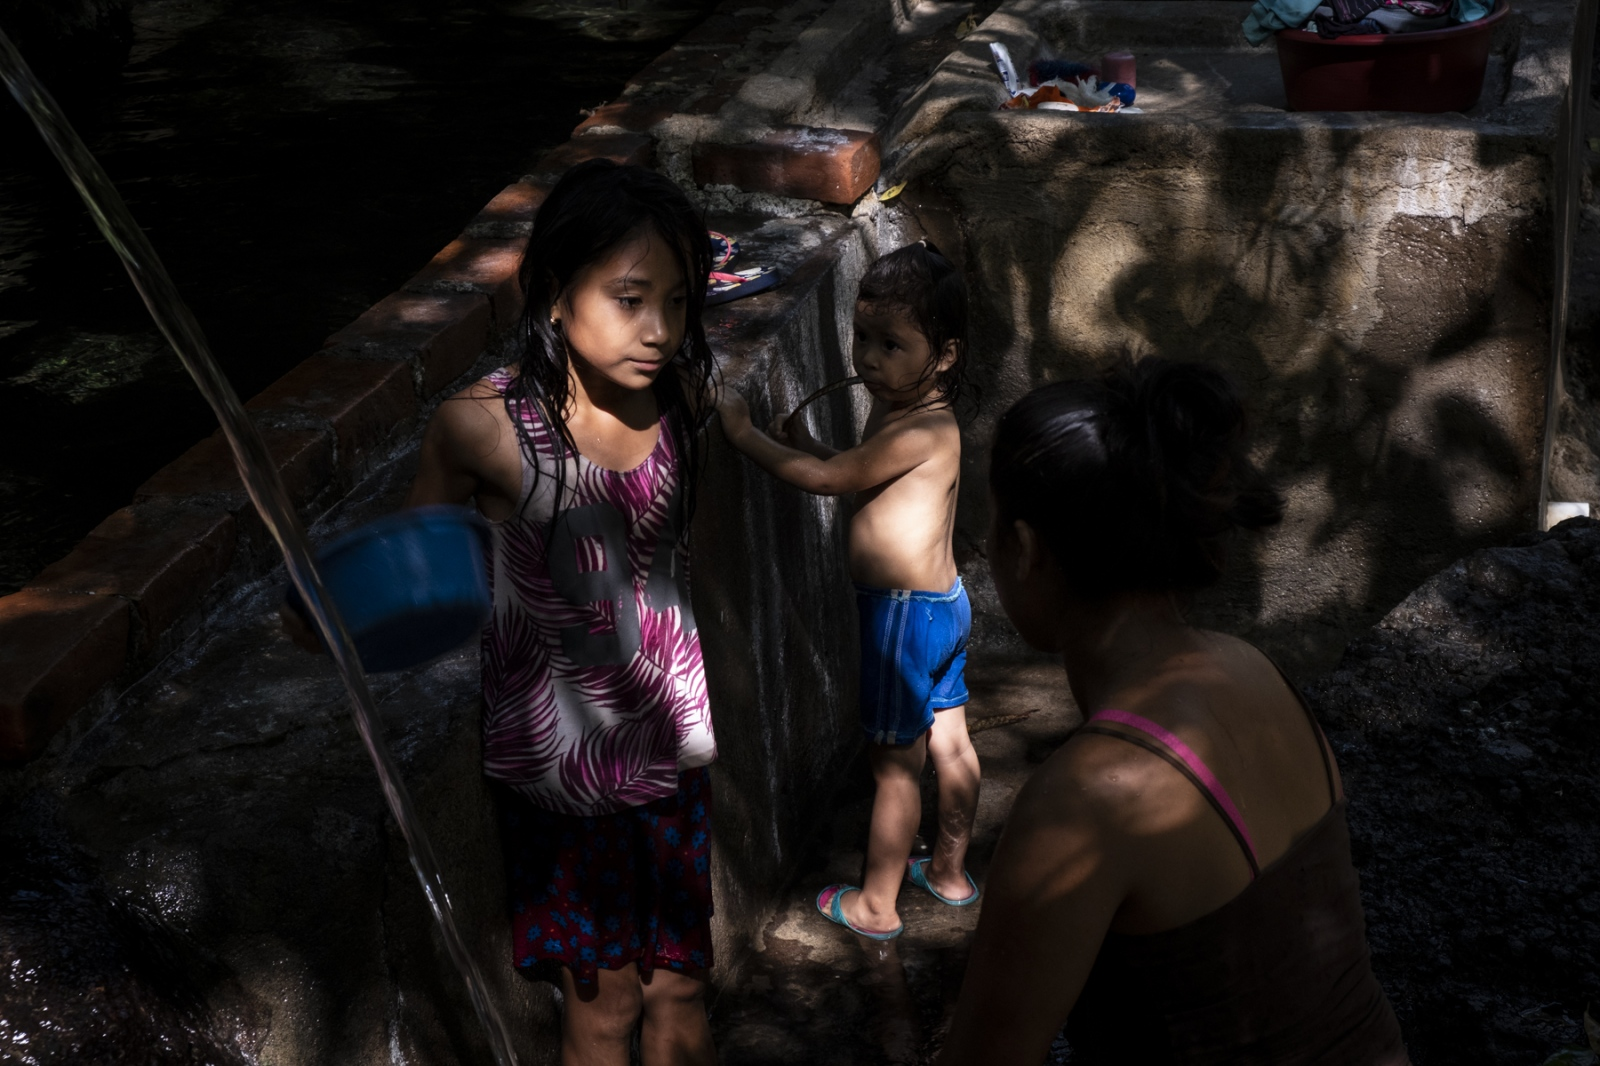 A family collects water from a makeshift plumbing system in Tres Calles, Usulután. Being the only spring in the community, many families walk up to 2 hours in the dry season to collect water for their homes.   According to the WFP, the surge in number of unaccompanied minors who arrived to the United States from El Salvador between 2015 and 2016 is linked to the period of hightened food insecurity in the country's Dry Corridor.